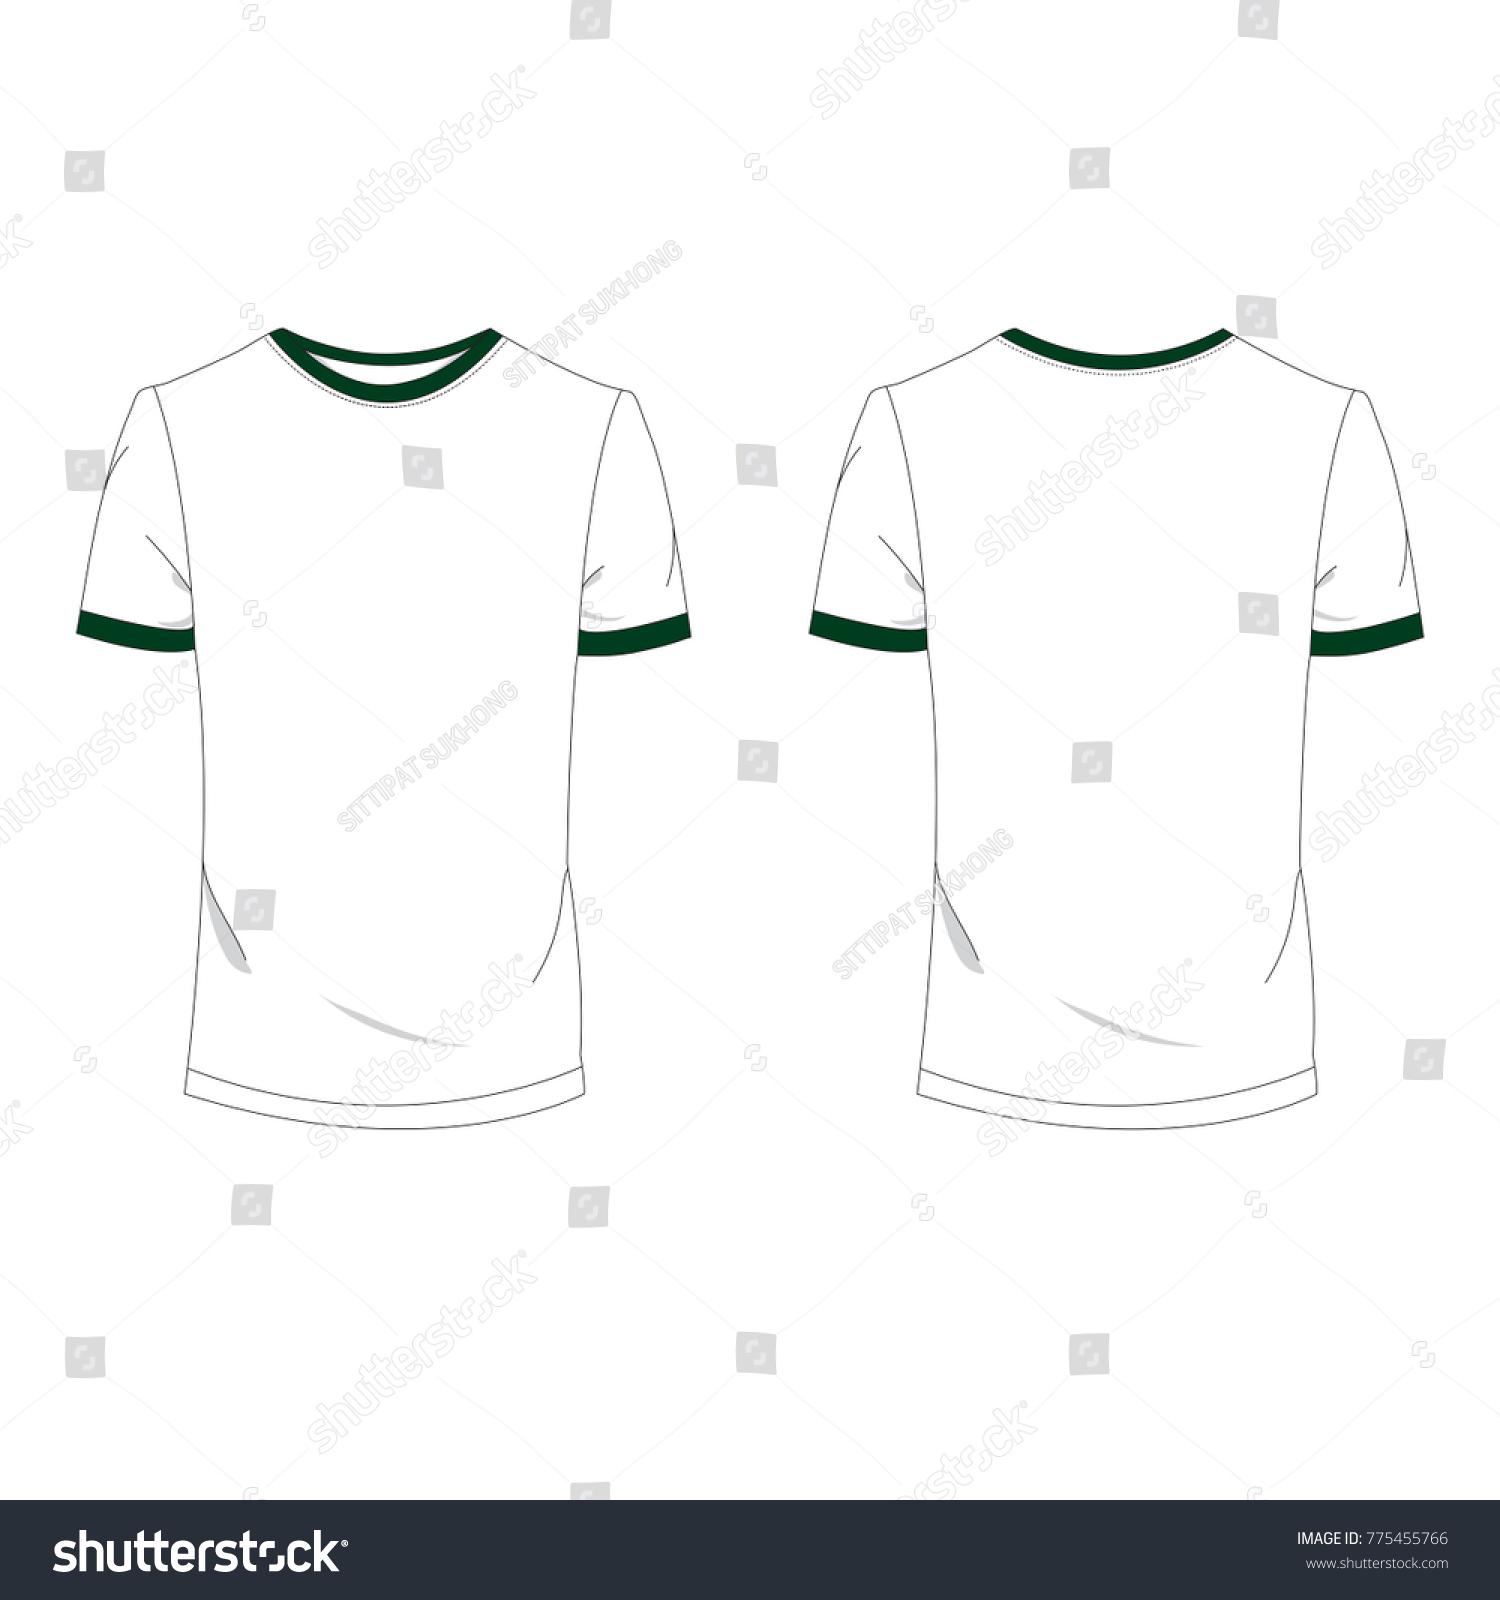 two tone green white tshirt template stock vector royalty free